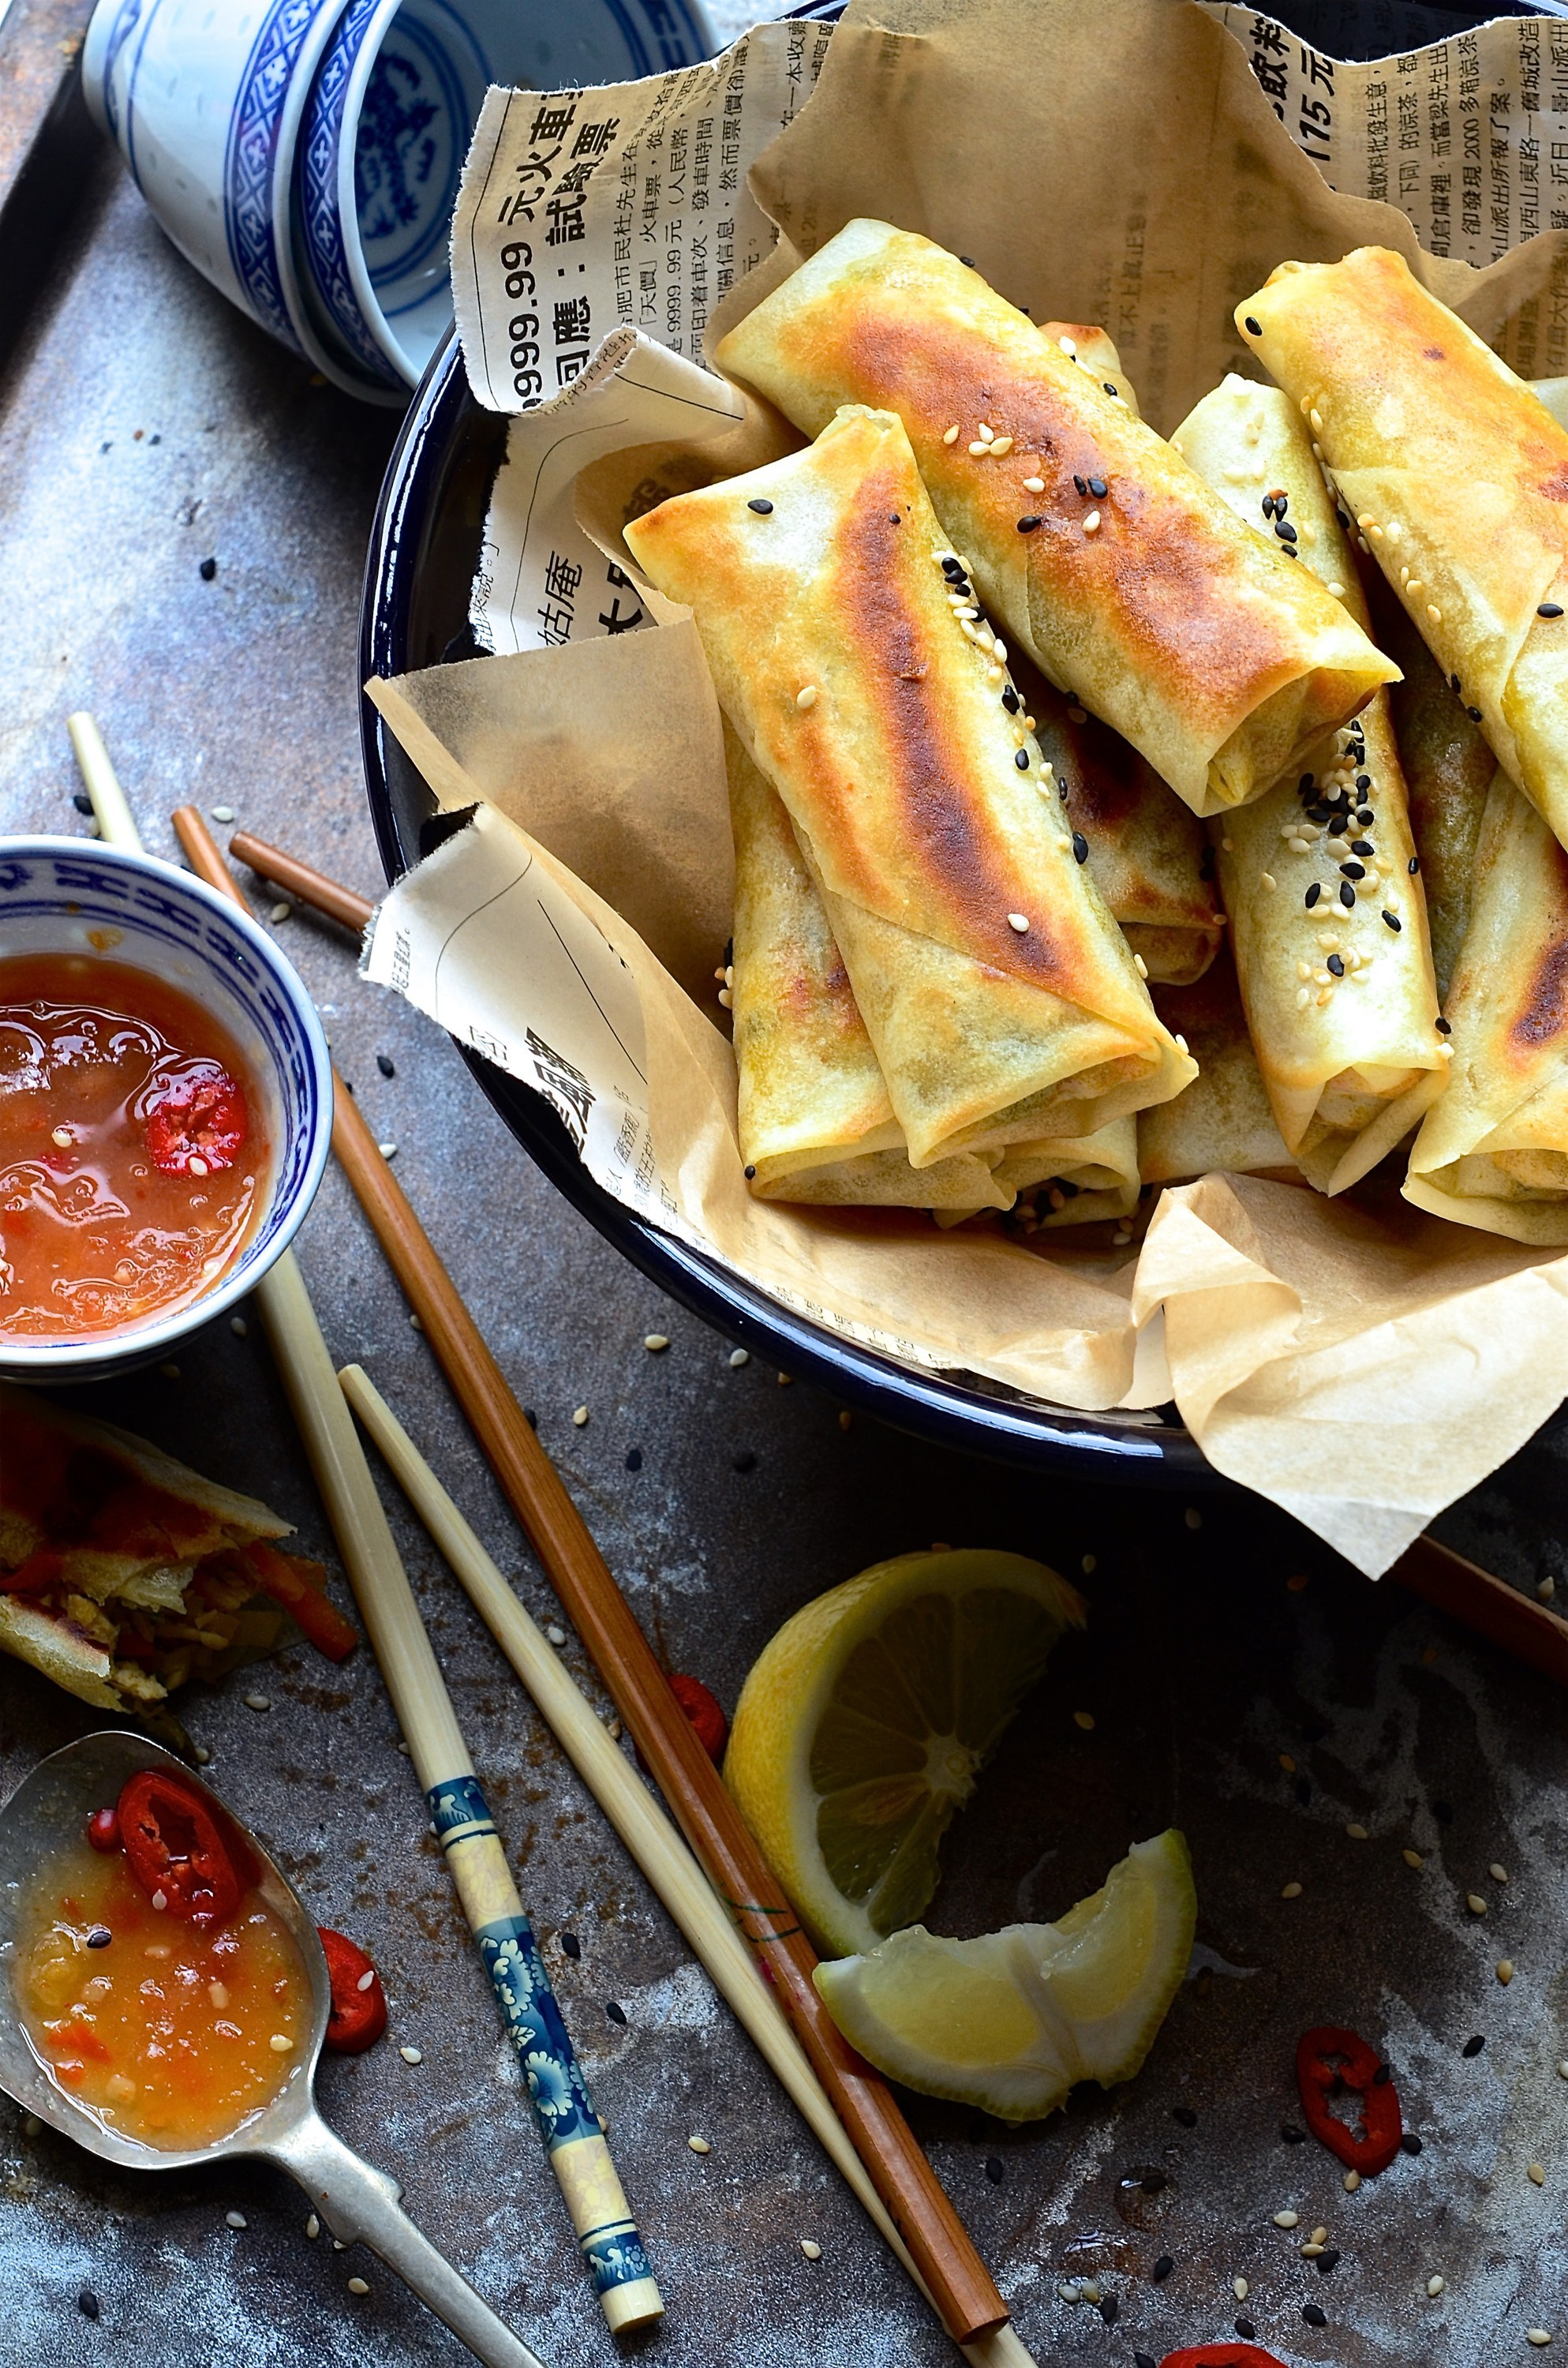 Oyster sauce chicken spring rolls | Bibbyskitchen recipes